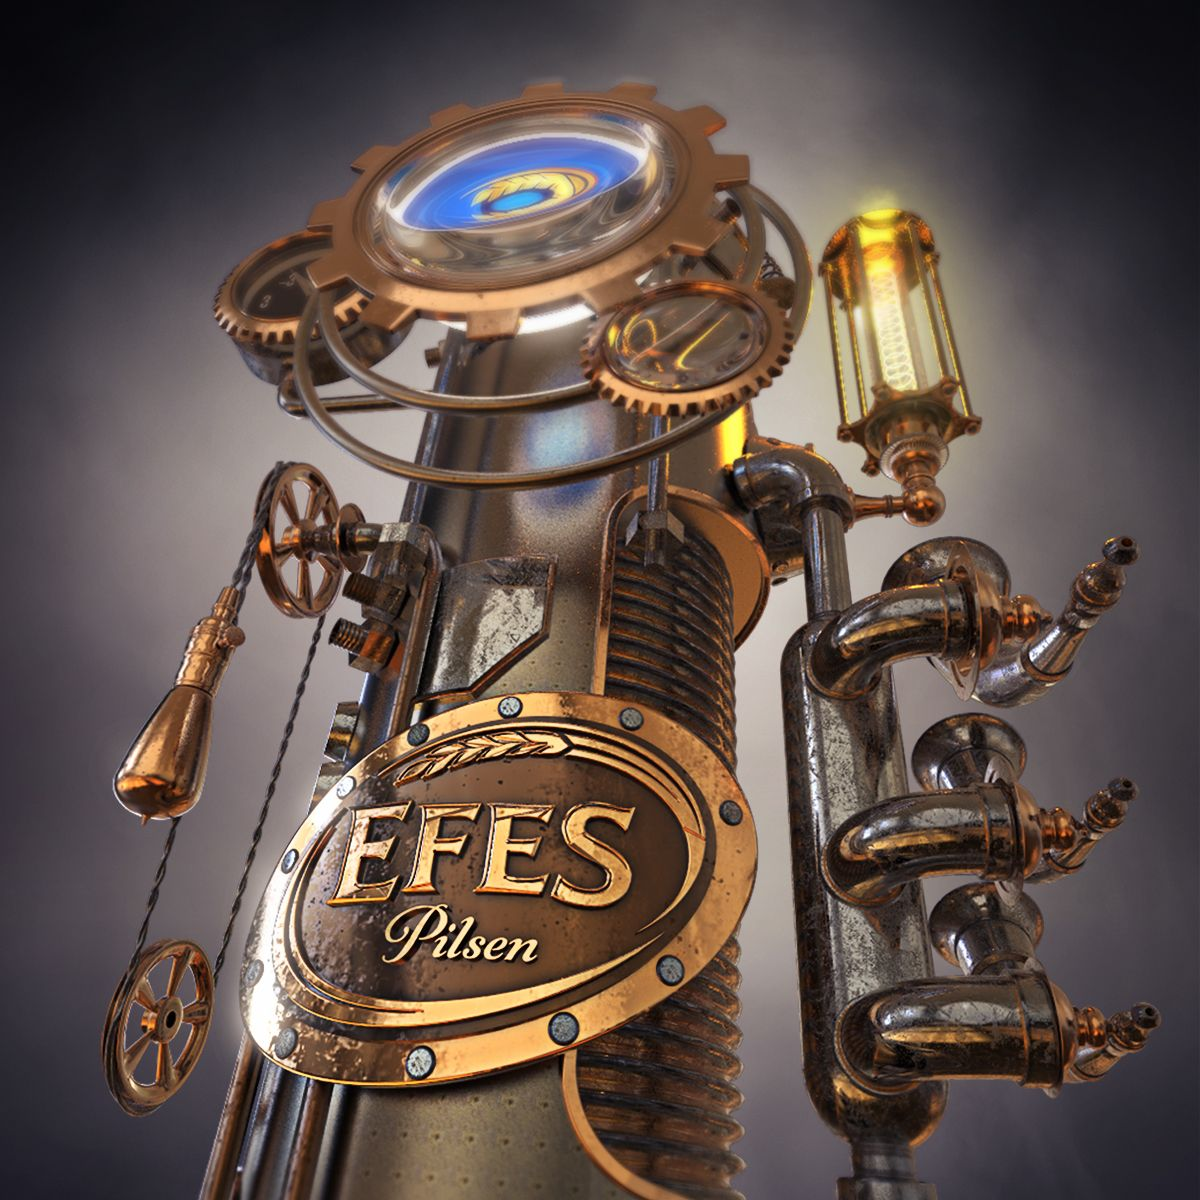 Efes Beer Tower Steampunk On Behance Beer Tower Efes Beer Beer